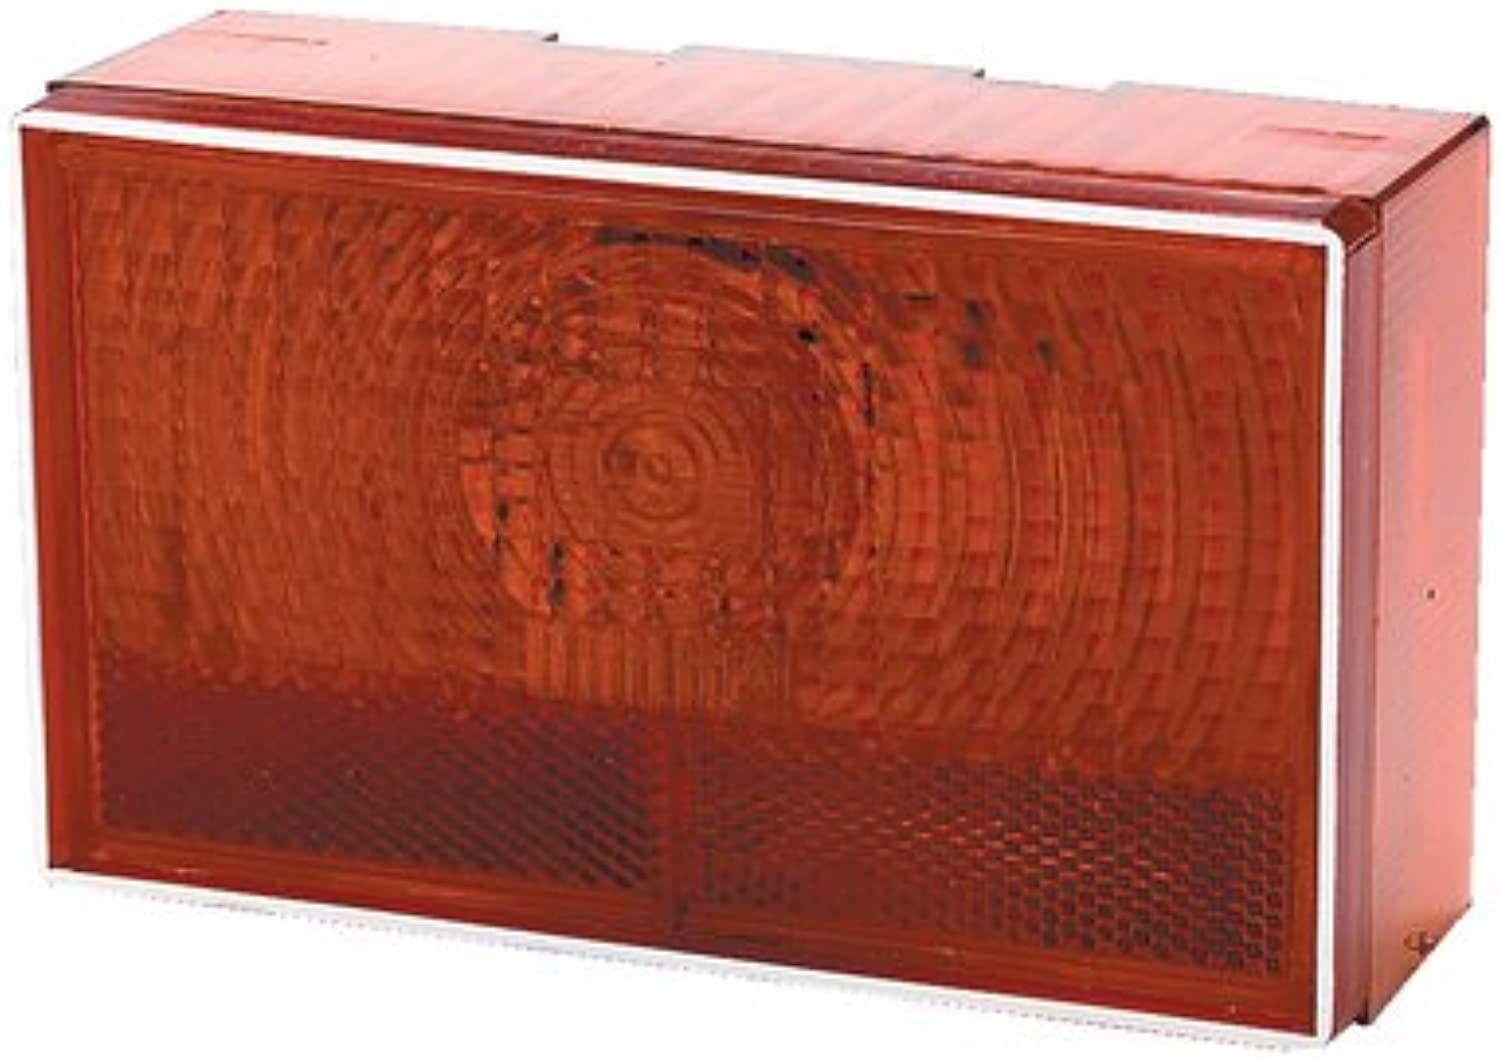 Seachoice 51471 Submersible Universal Mount Combination Tail Light for Over 80 Inch Applications – 8Function, Driver Side